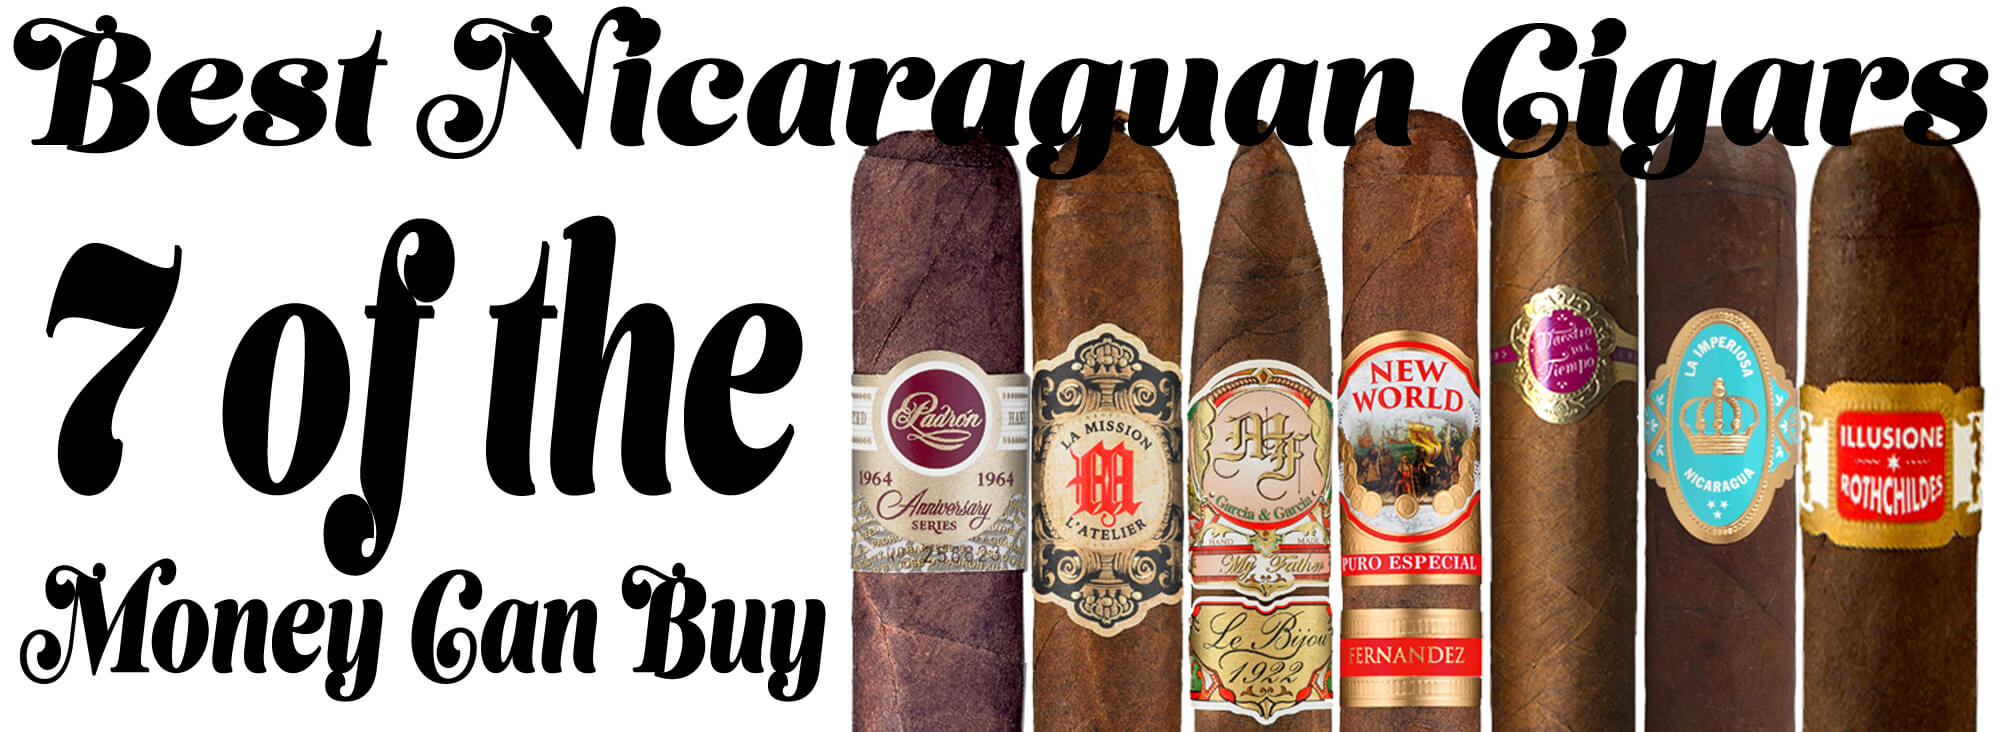 7 of the Best Nicaraguan Cigars Money Can Buy